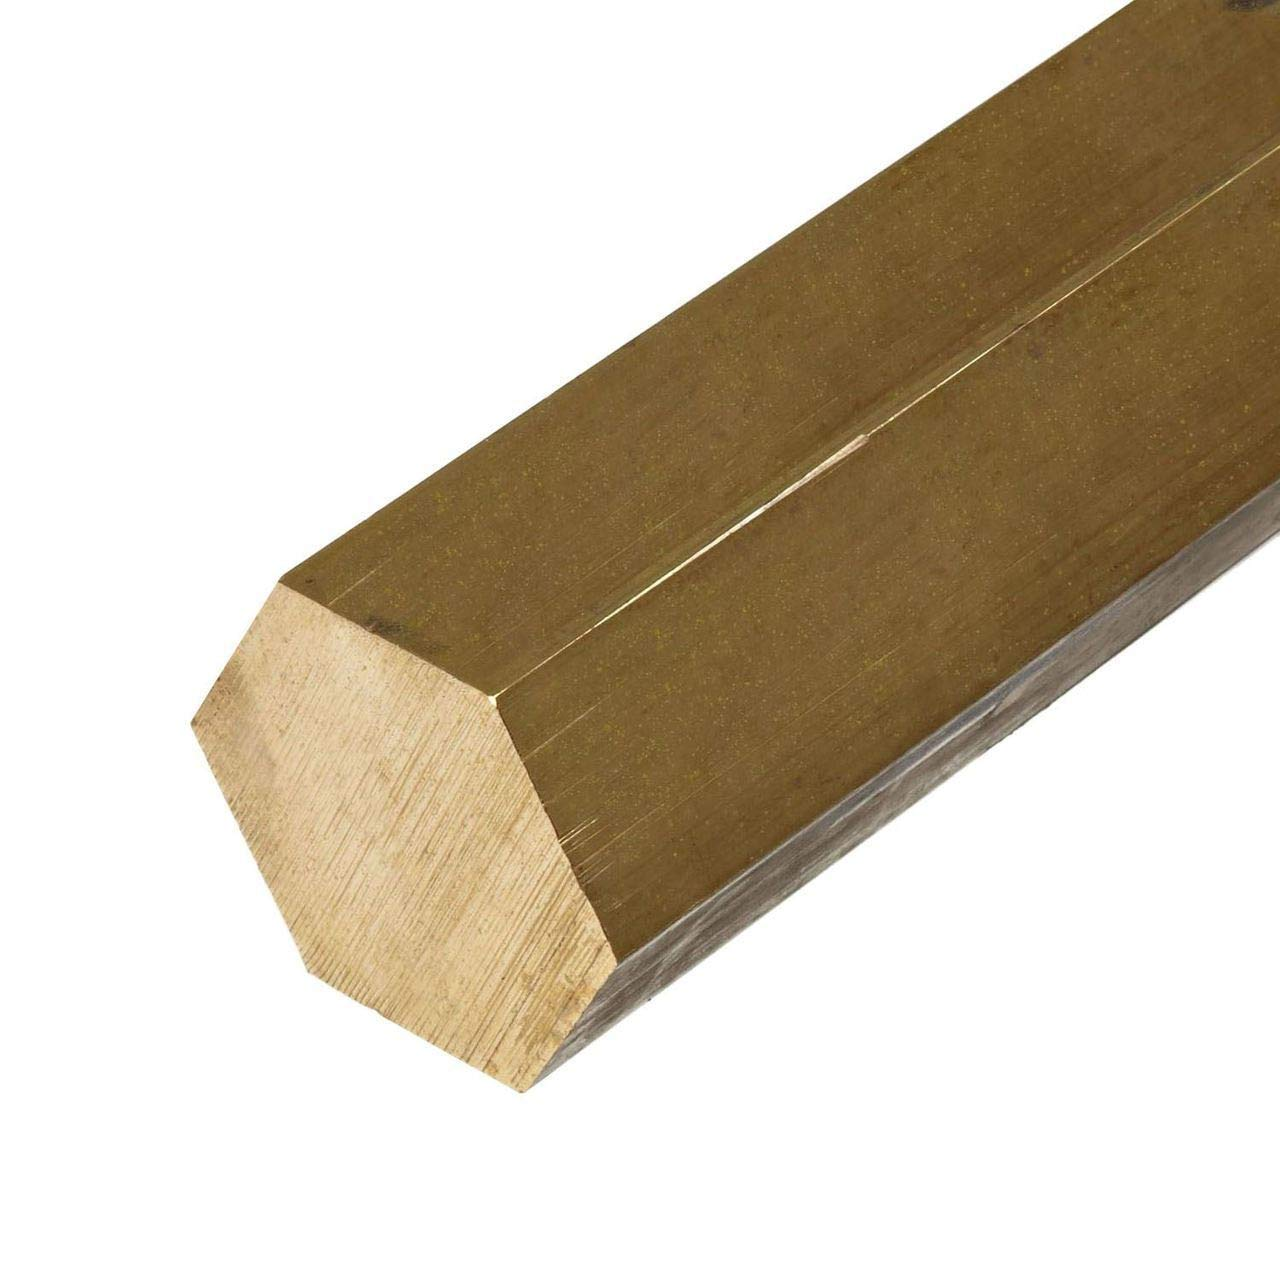 Online Metal Supply C360 Brass Hexagon Bar, 0.375 (3/8 inch) x 12 inches by Online Metal Supply